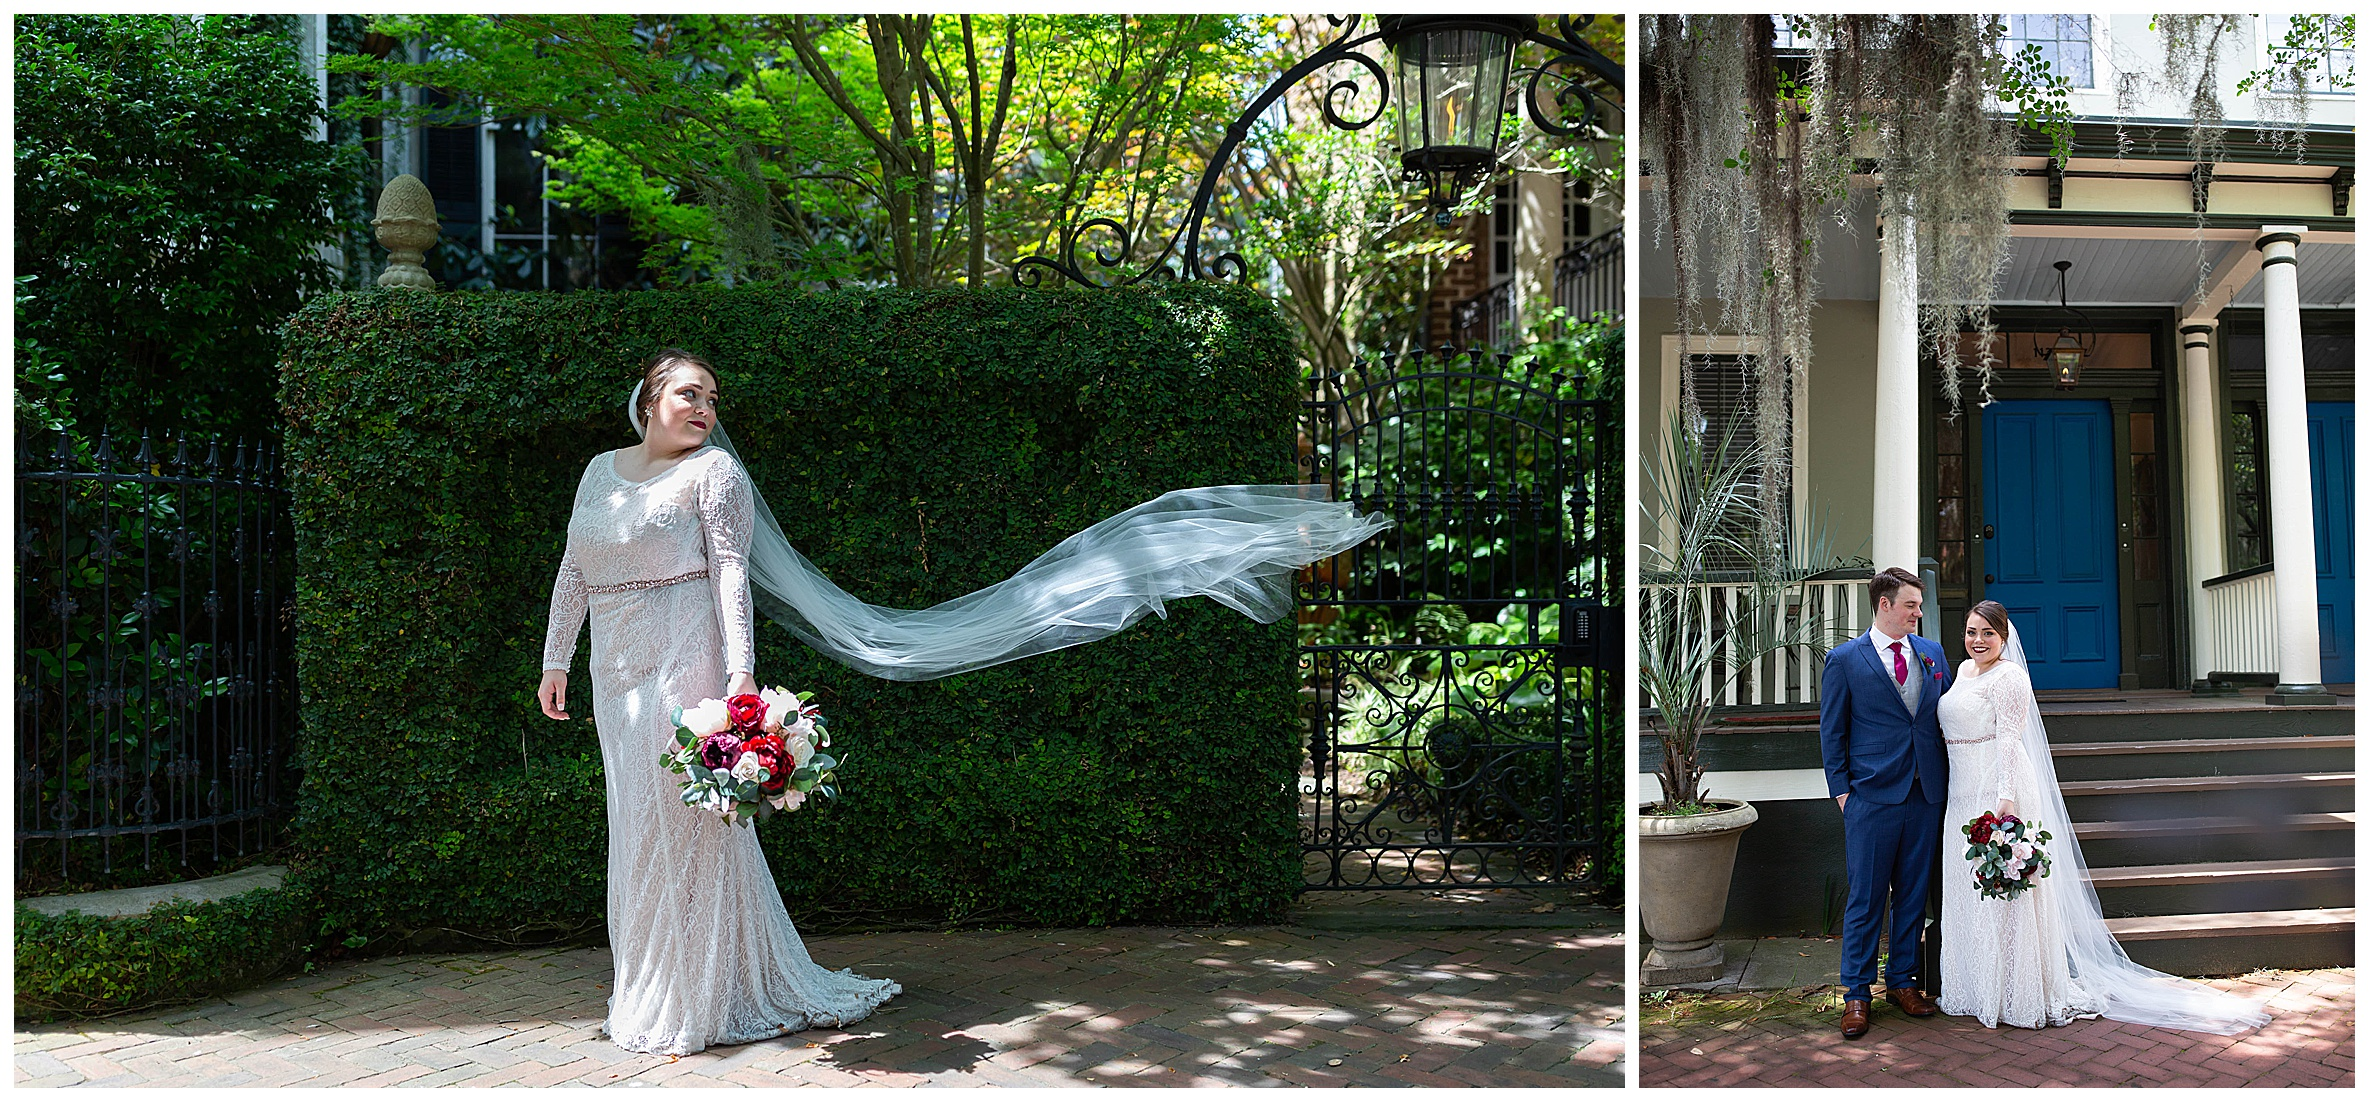 SAVANNAH ELOPEMENT PHOTOGRAPHY-51-1.jpg